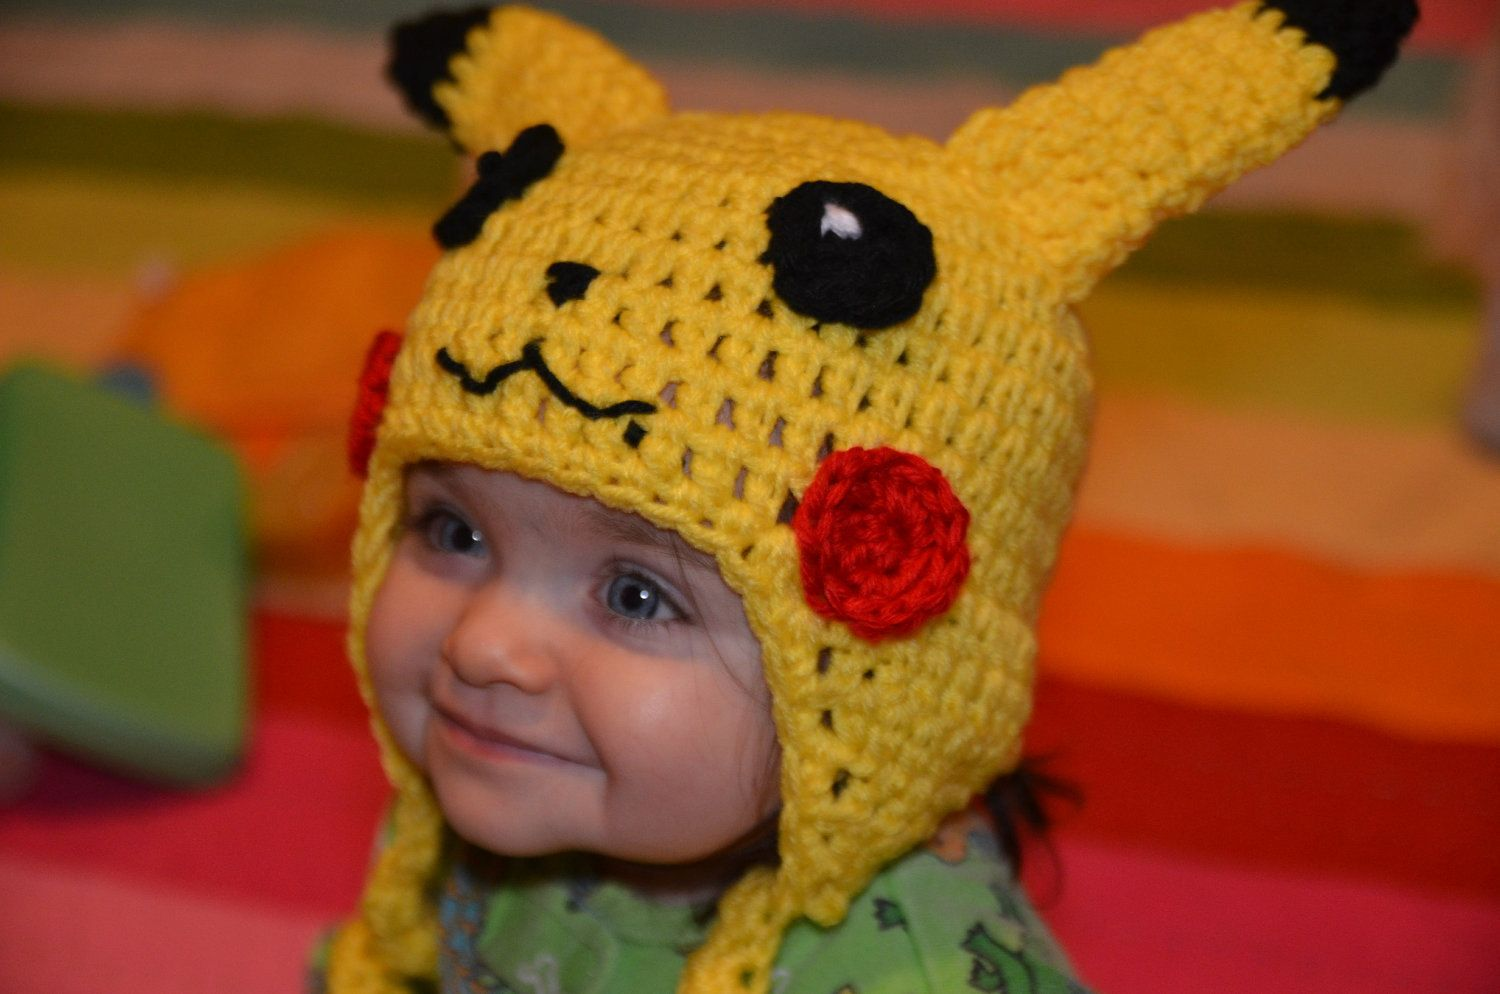 Knitted Pikachu Pattern : Pikachu Crochet Hat Pattern (Baby, Toddler, and Child sizes). USD8.99, via Etsy...